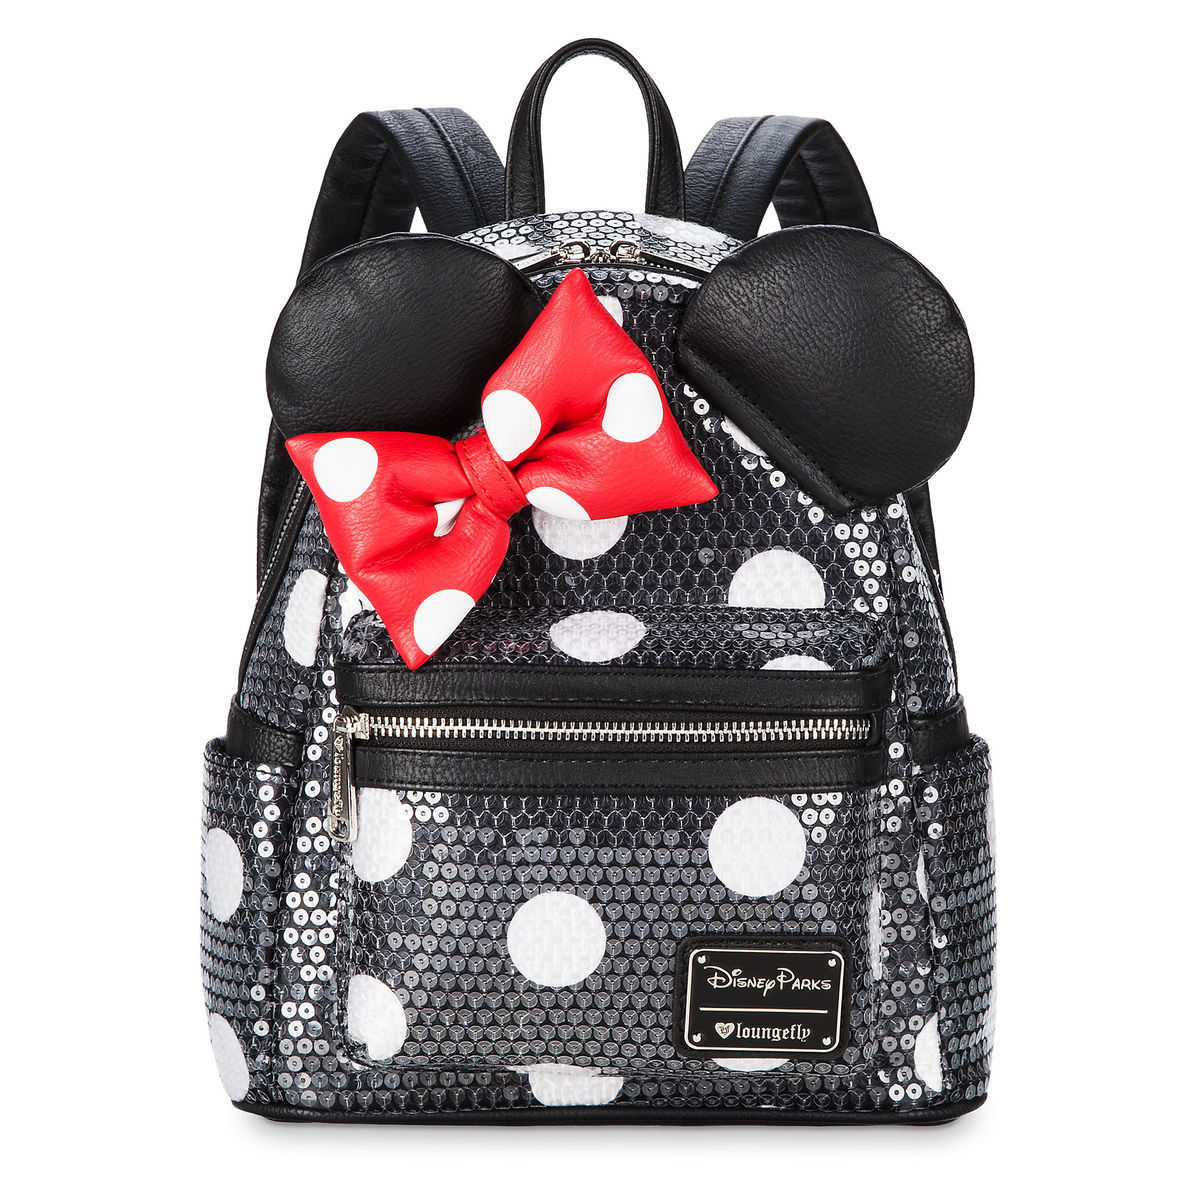 66eb9086ffc2 Disney Minnie Mouse Sequined Mini Backpack by Loungefly New with Tags – I  Love Characters